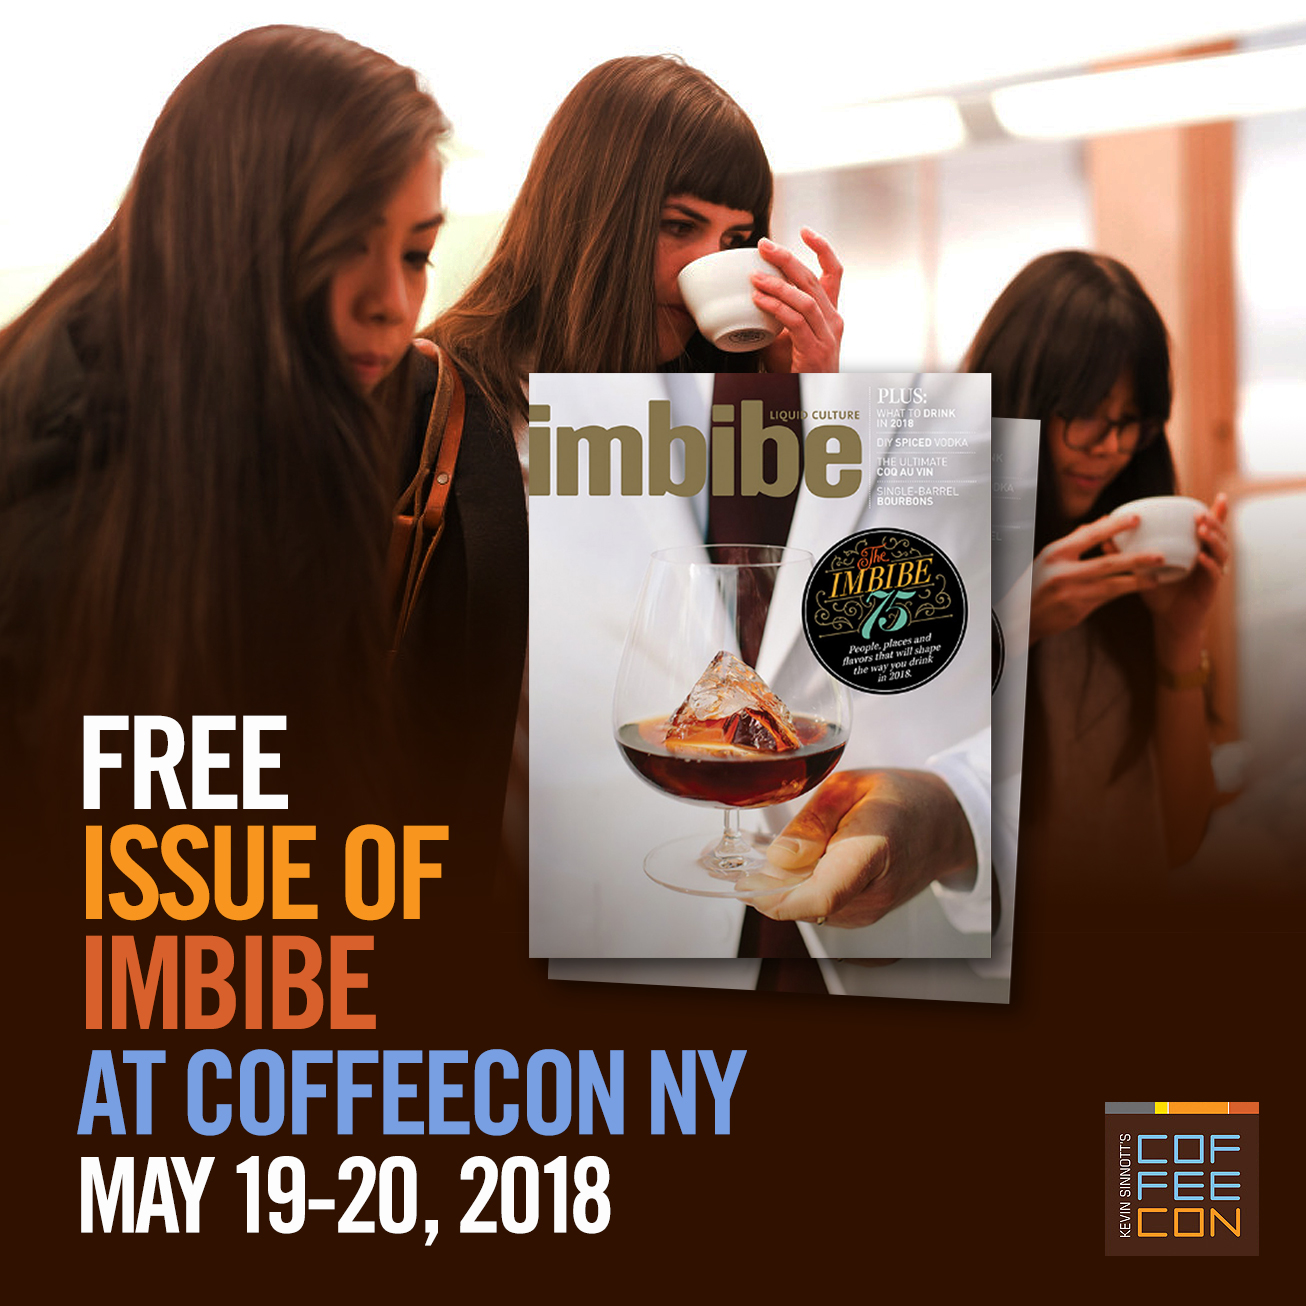 Free Issue of Imbibe Magazine at CoffeeConNY